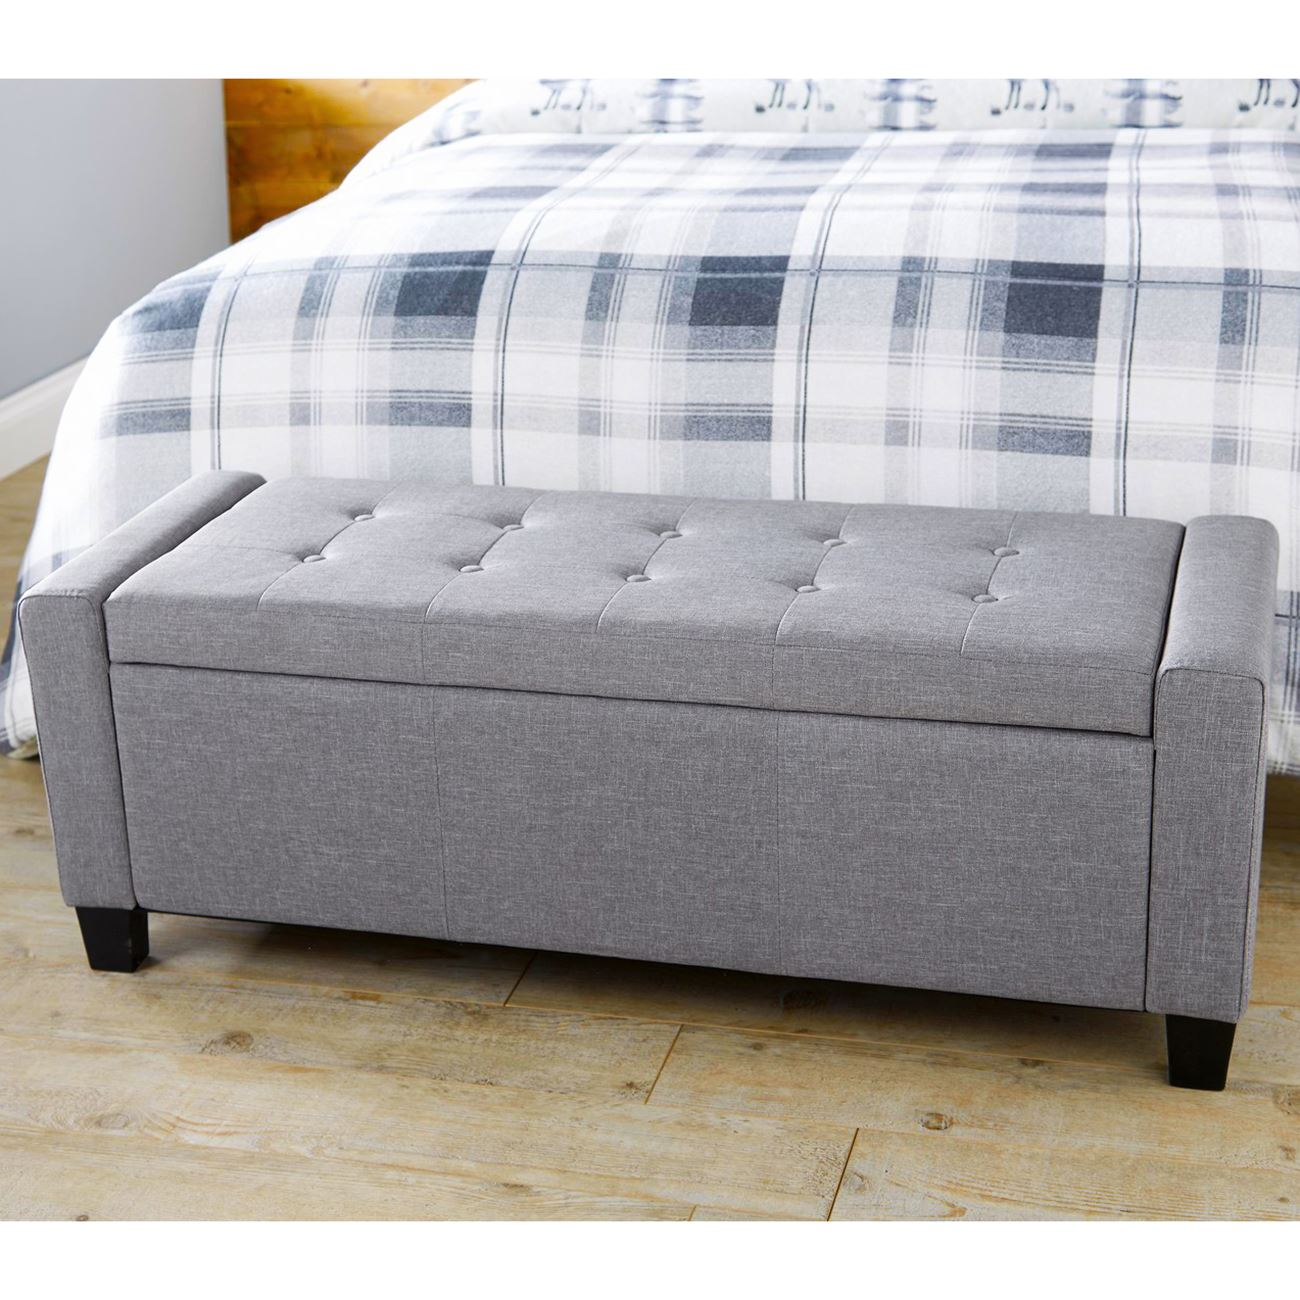 VERONA OTTOMAN STORAGE BLANKET BOX HOPSACK FABRIC SEAT BENCH FOOT STOOL  SILVER - Fabric Ottoman Storage Ottomen EBay